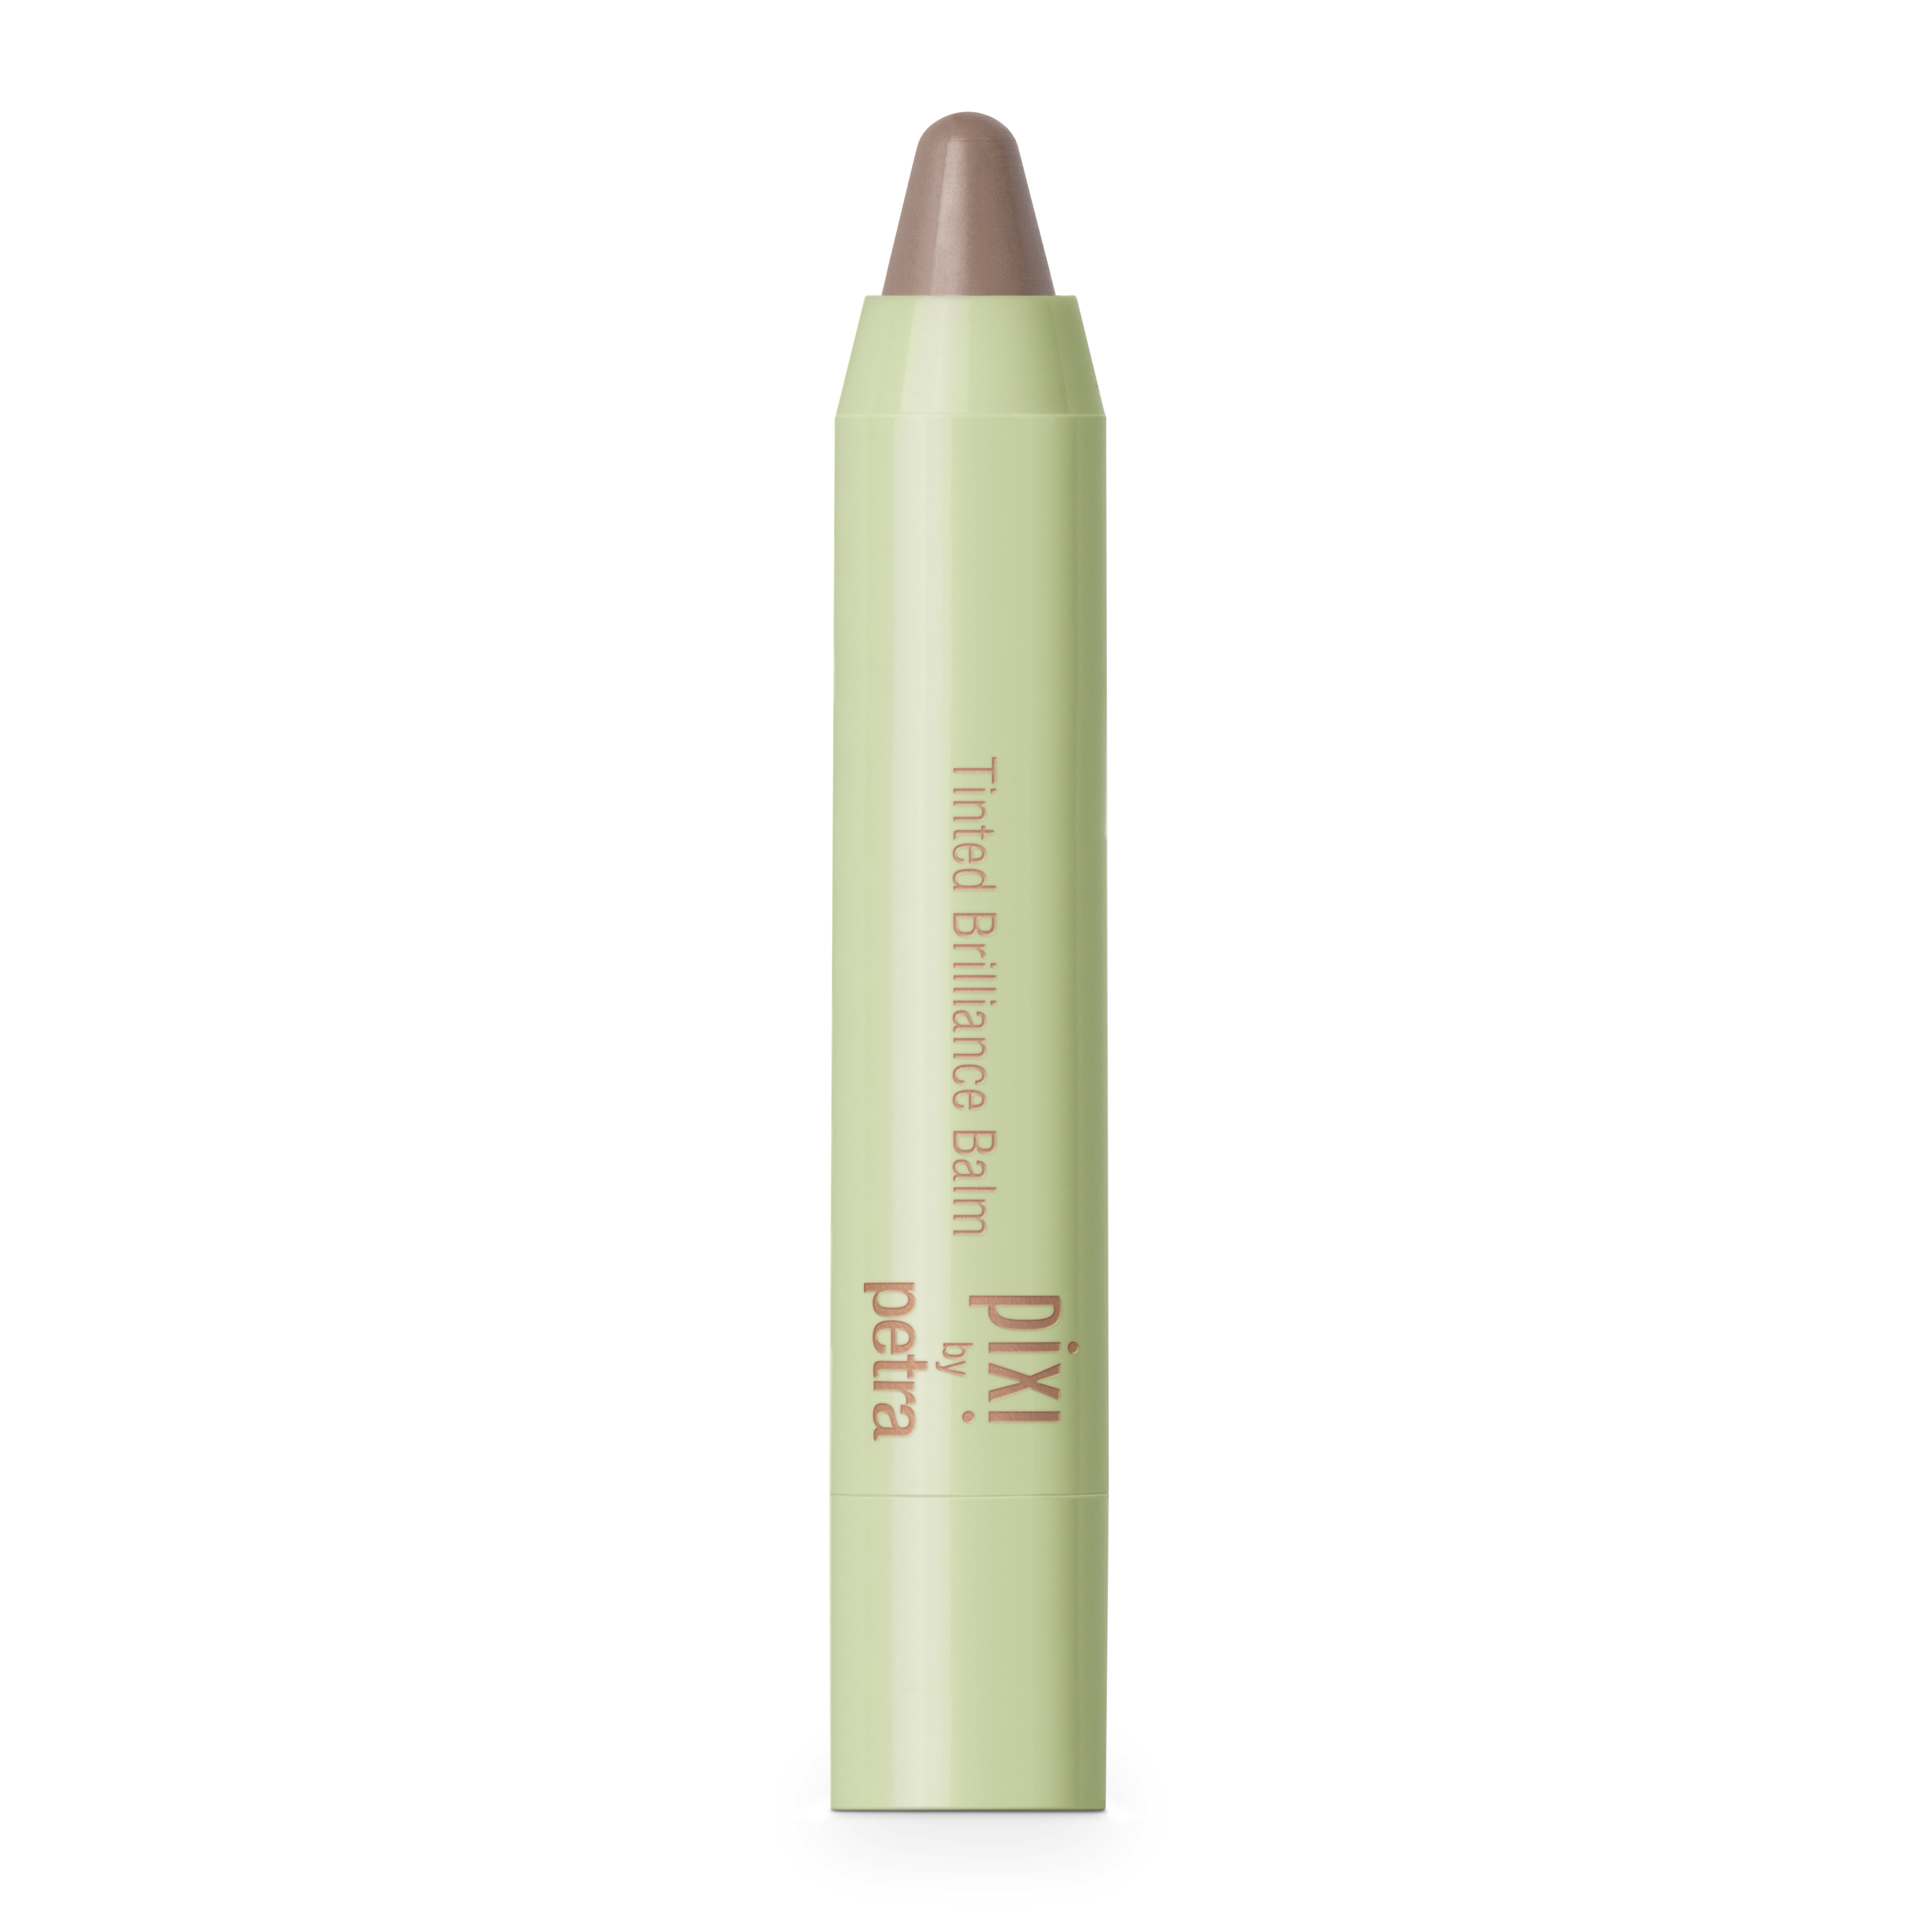 Tinted Brilliance Balm Nearly Naked